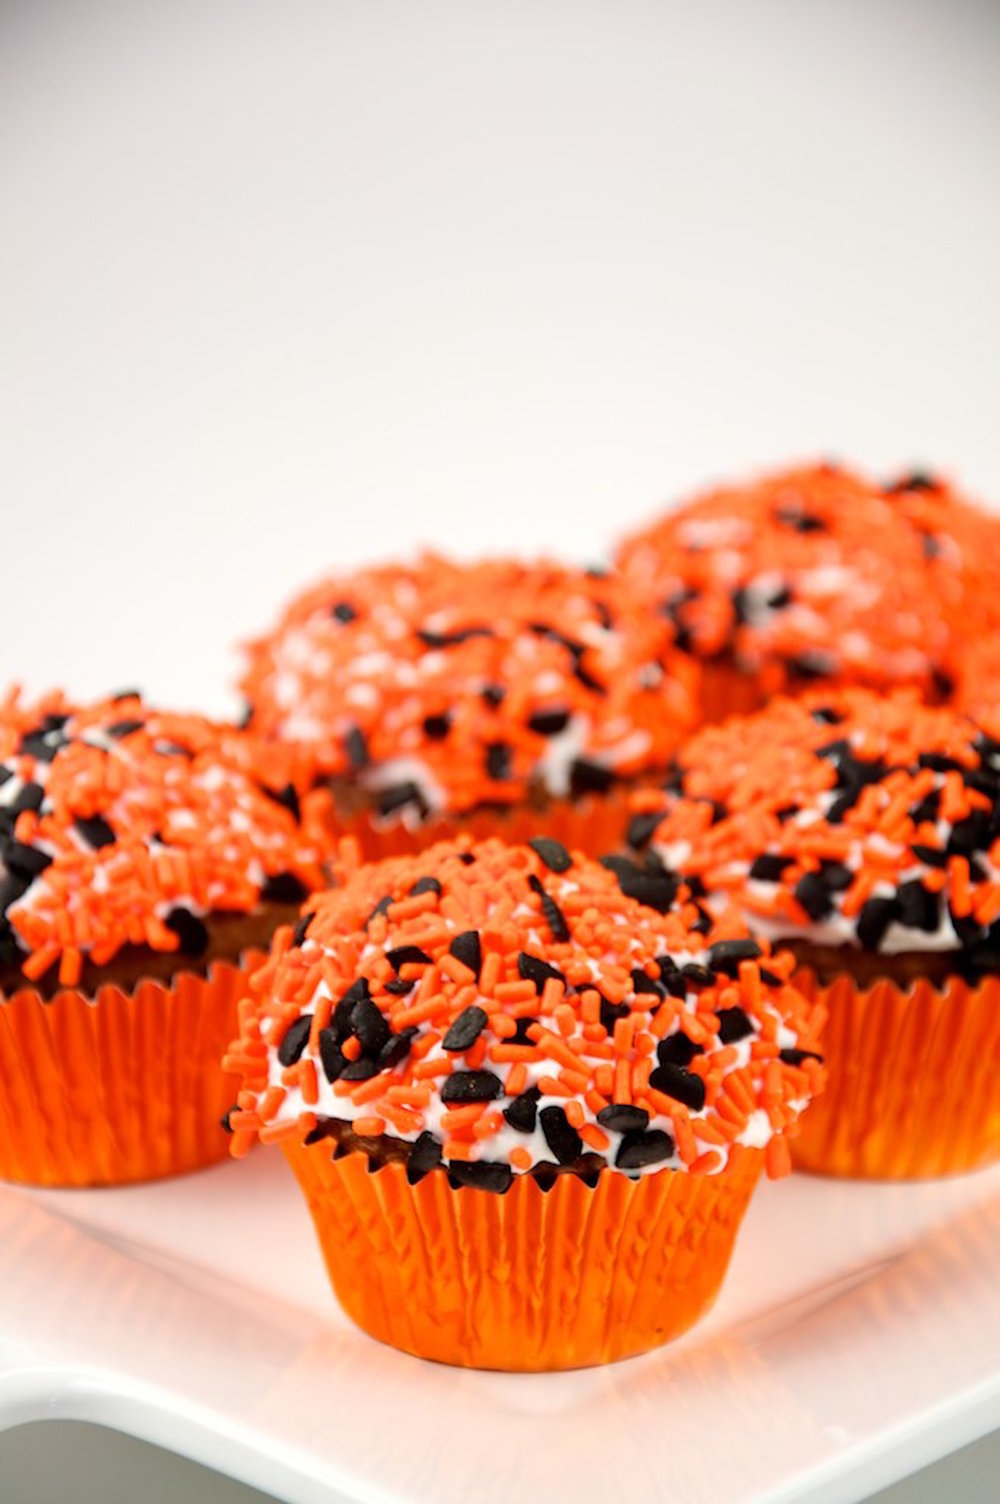 A chocolate cupcake with Halloween-colored sprinkles in an orange foil wrapper. (Courtesy/TheCulinaryGeek/Wikimedia Creative Commons)